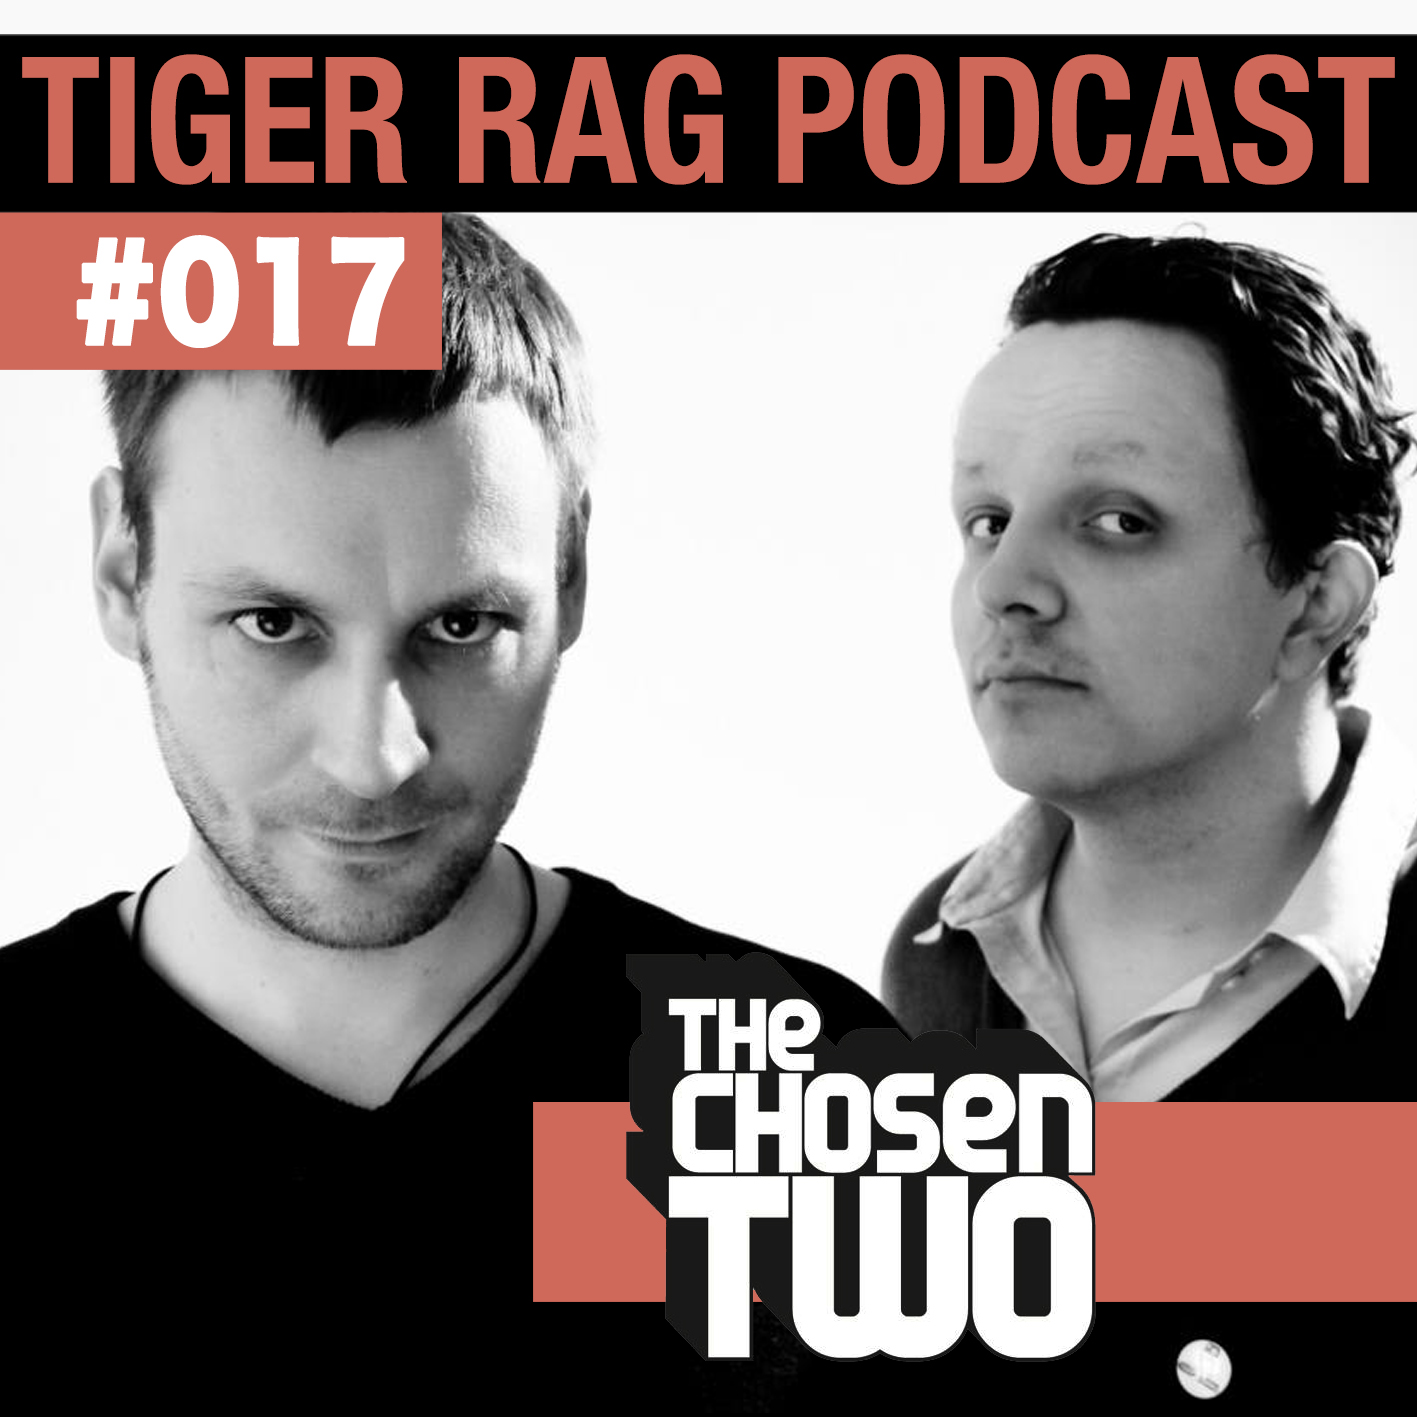 Tiger Rag Podcast 017 - The Chosen Two by Tiger Rag Club on ...